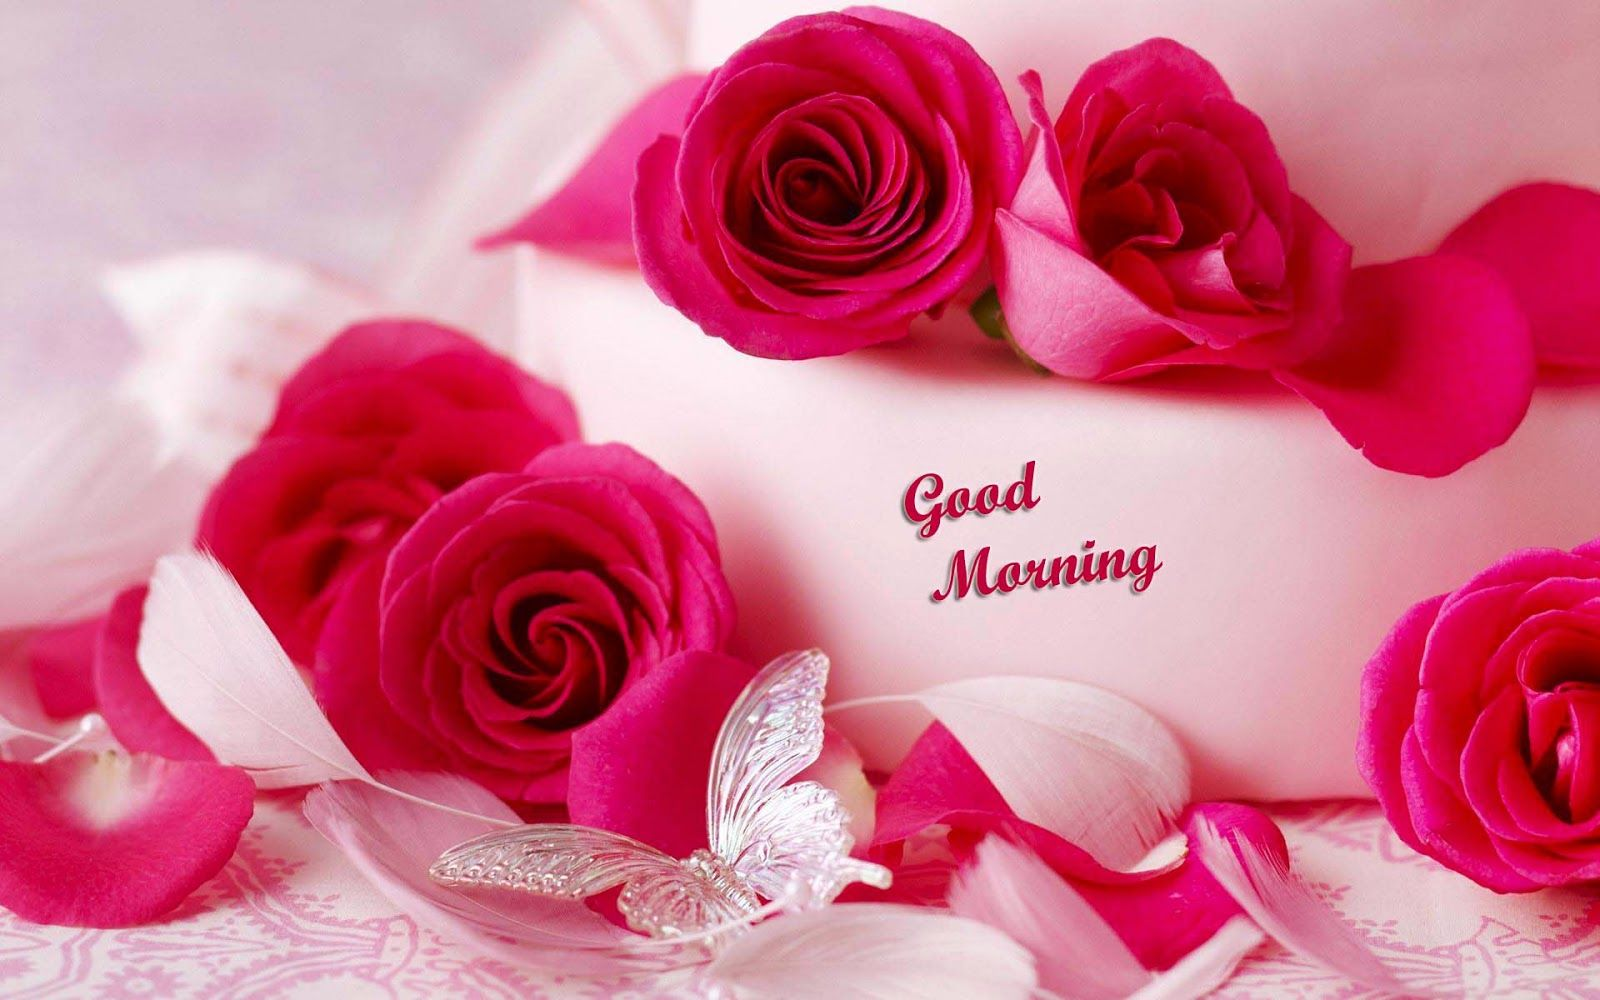 Good Morning Love Msg Wallpaper : Good Morning Love images Gud Morning images Quotes ...